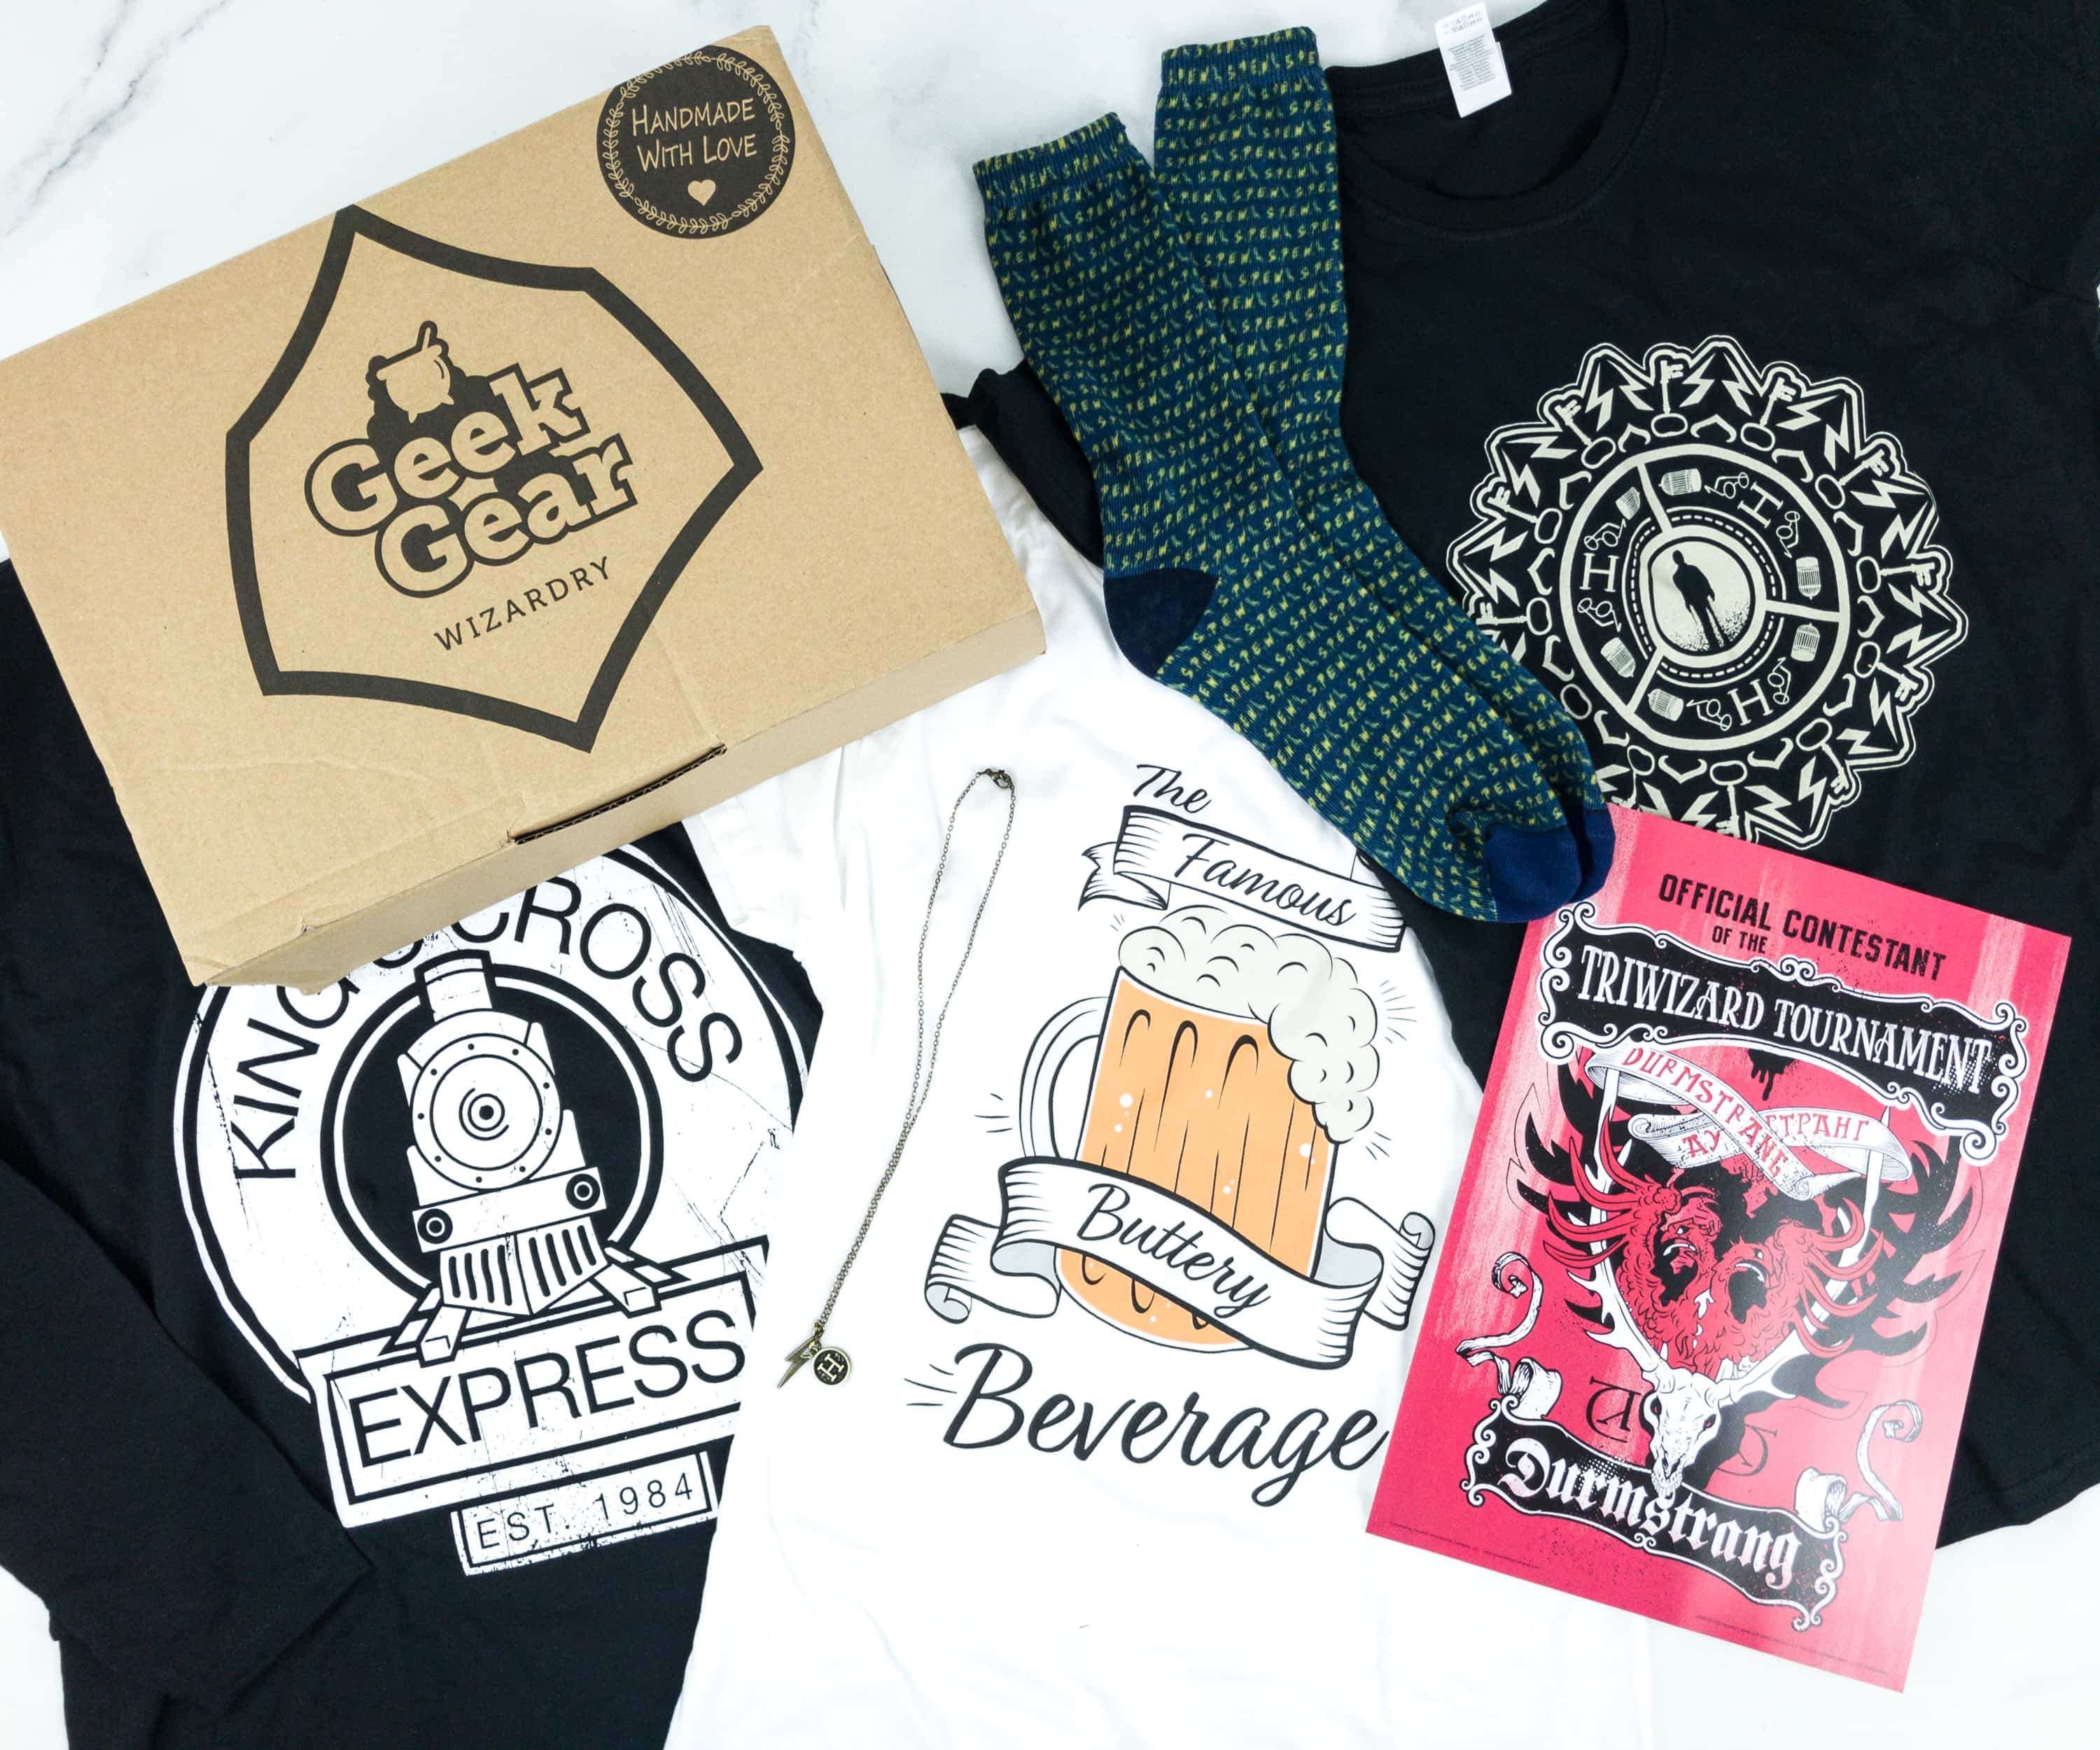 Geek Gear World Of Wizardry Wearables May 2019 Subscription Box Review Coupon Hello Subscription It's a fanfiction i need a four houses for durmstrang. geek gear world of wizardry wearables